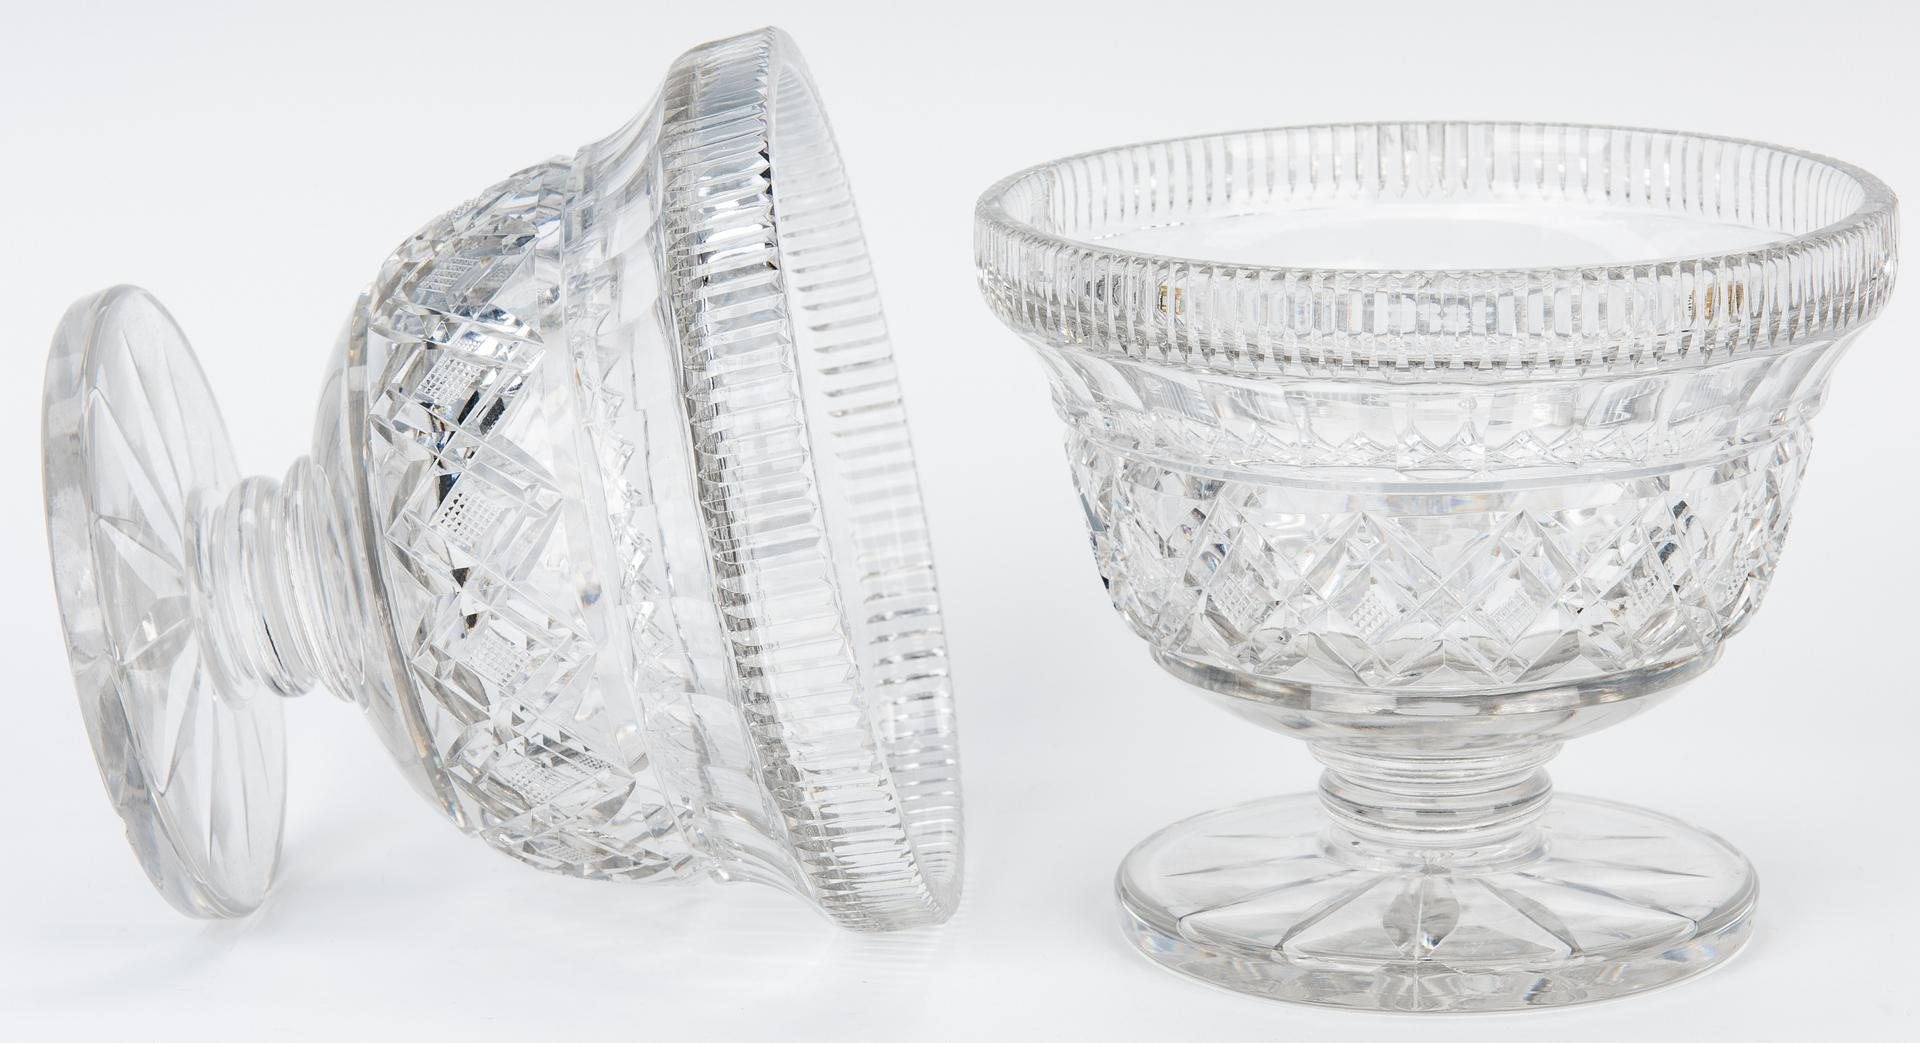 Group 5 Decorative Table Items & Baccarat Crystal - Image 4 of 25